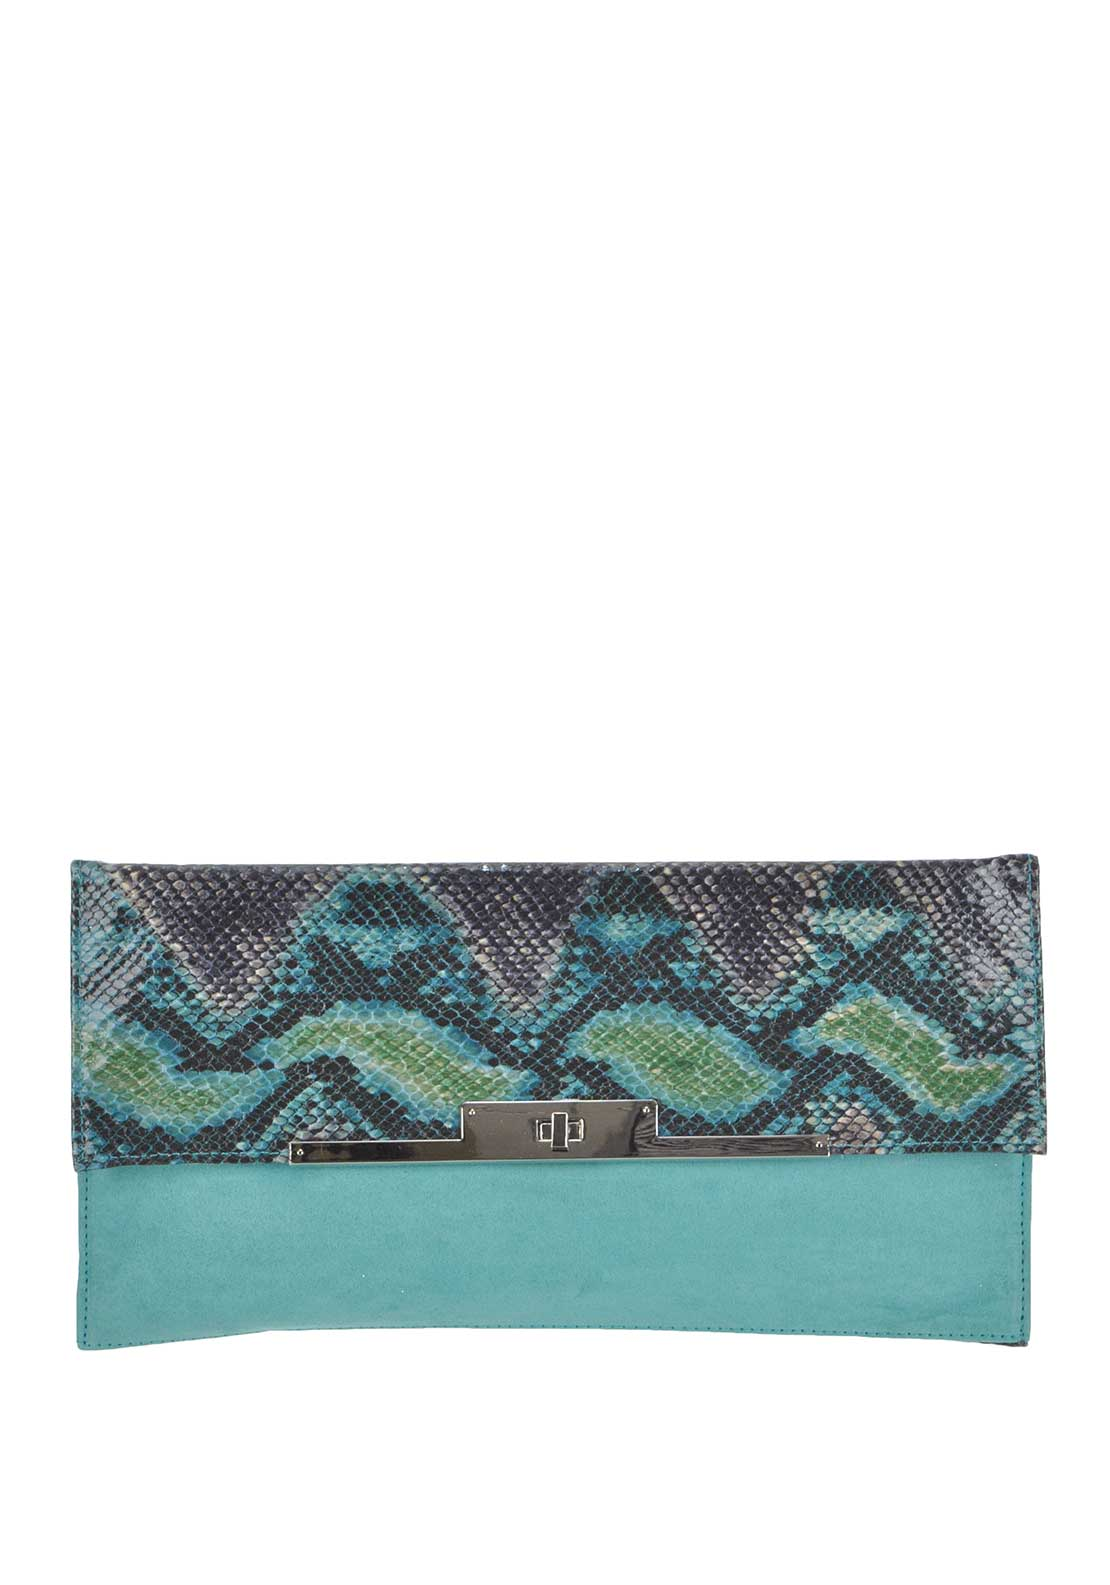 Glamour Reptile Print Clutch Bag, Green